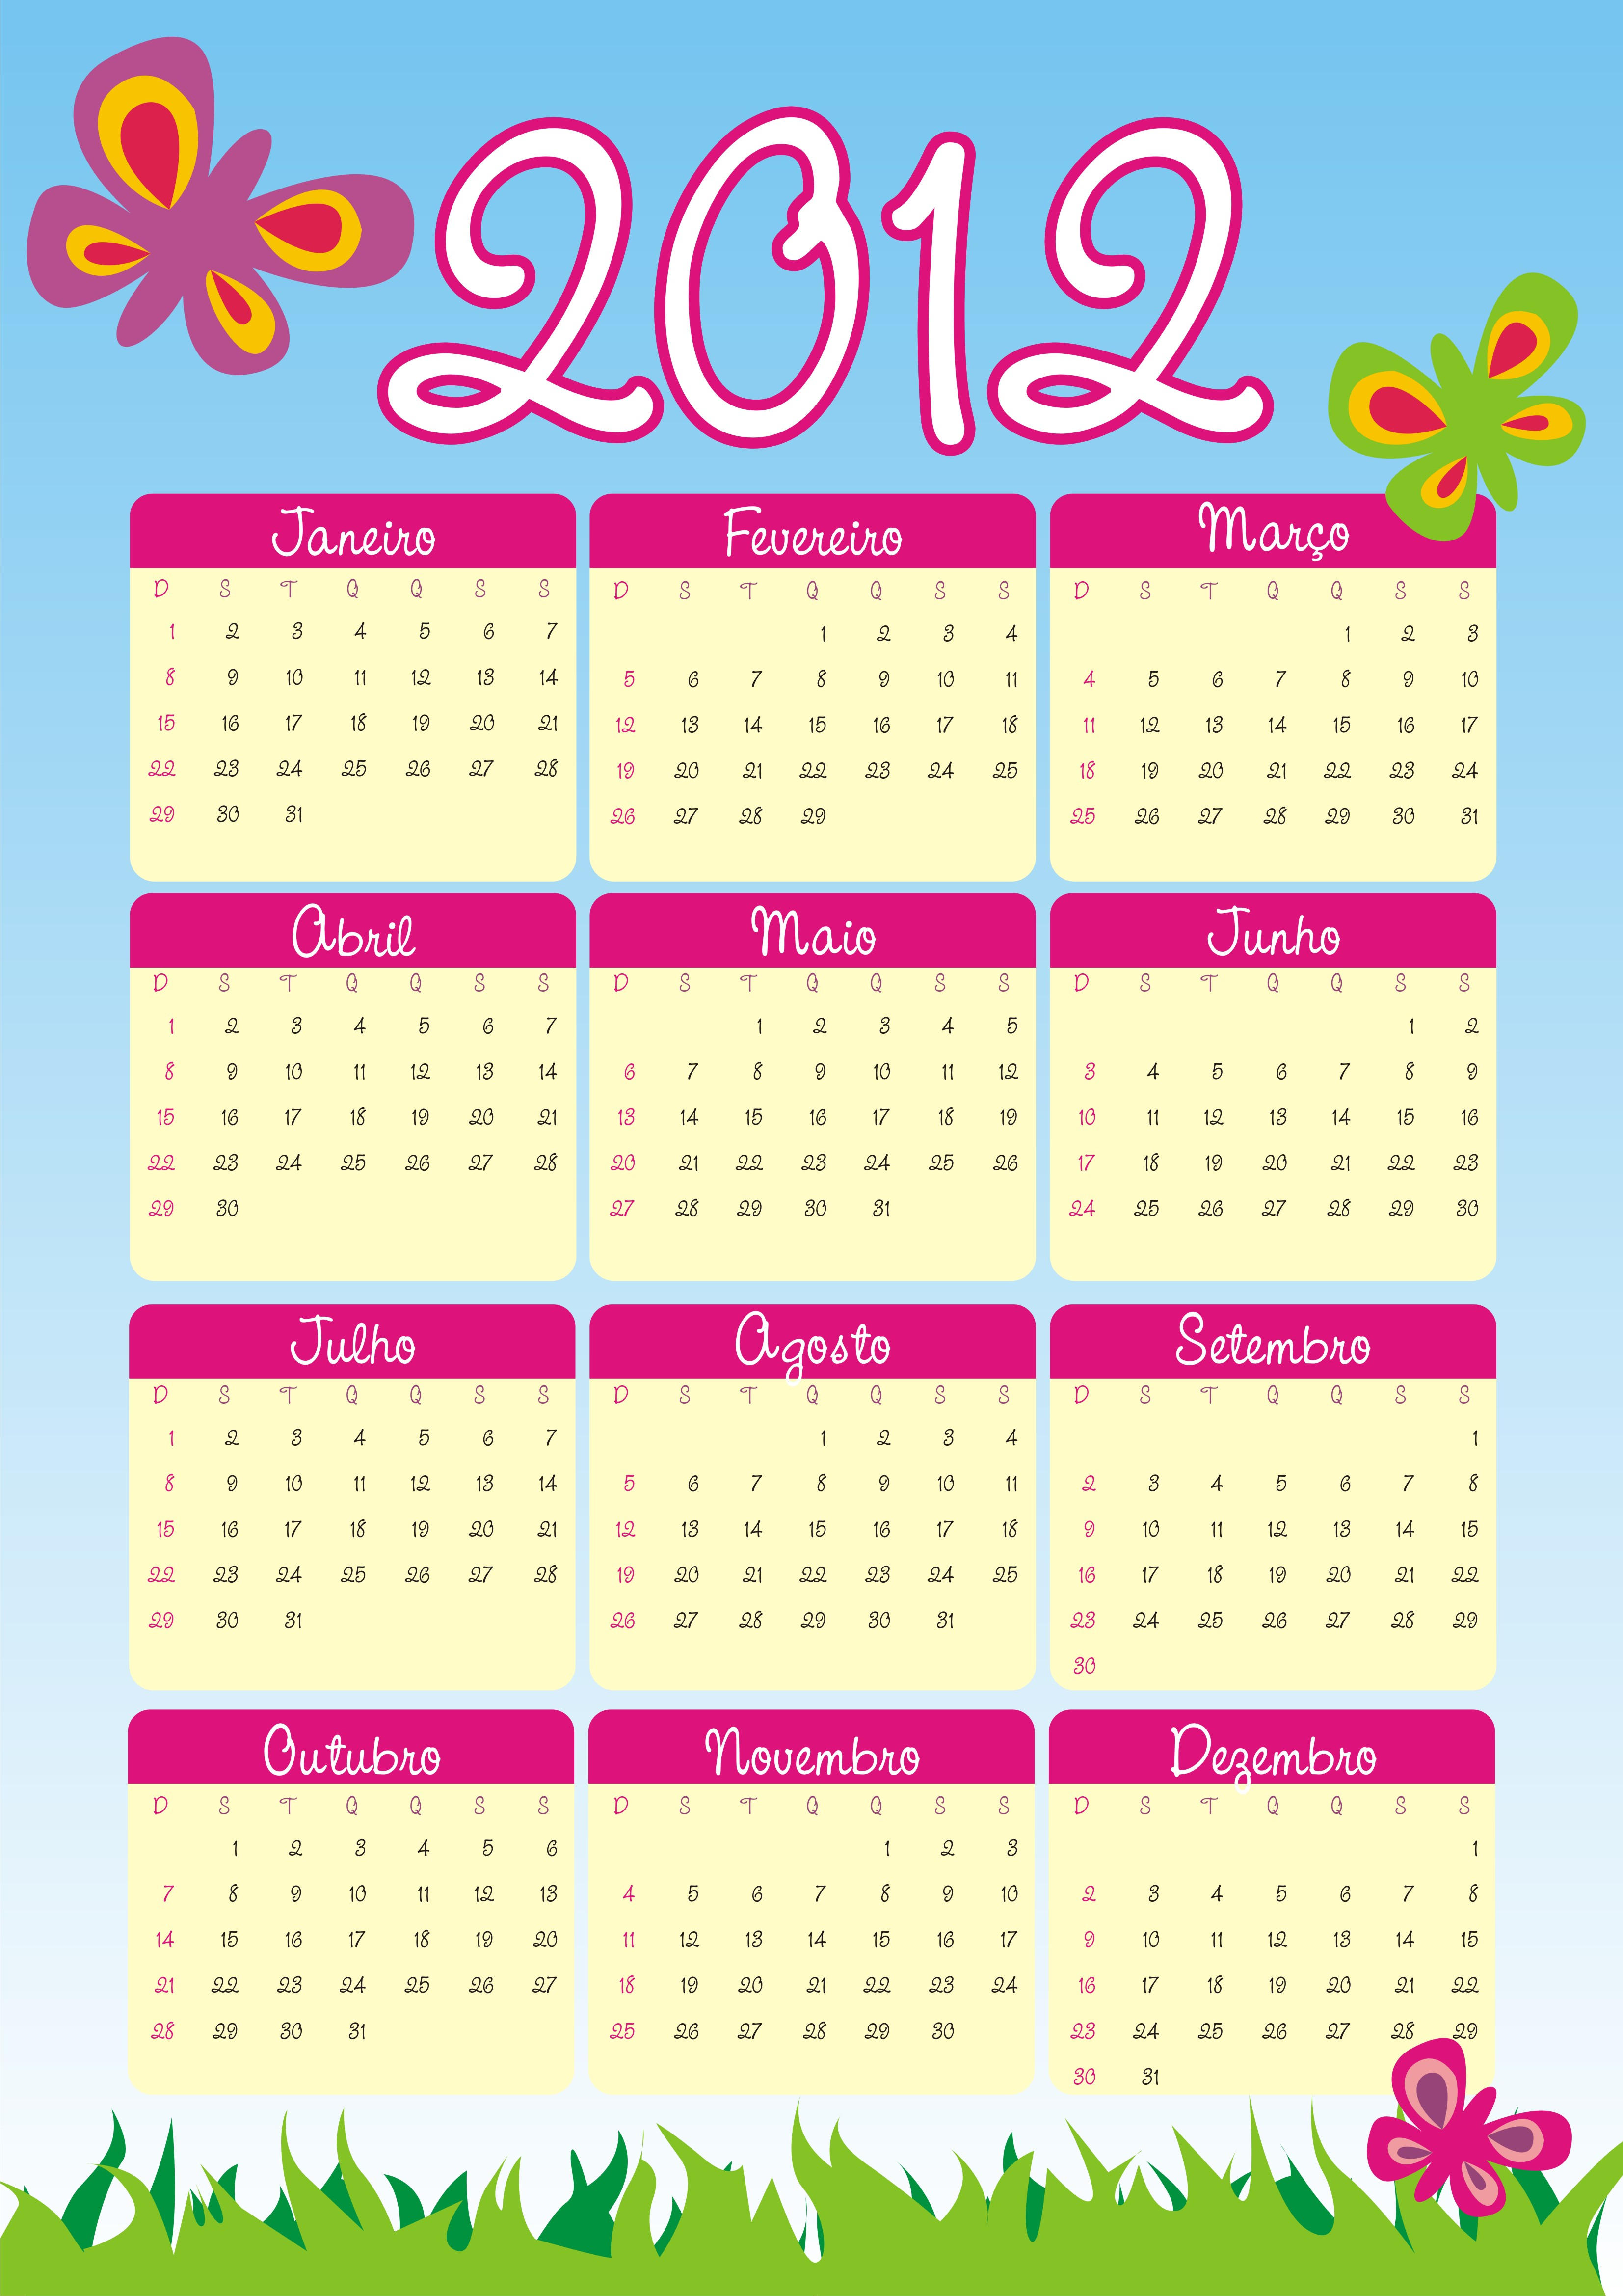 Tutorial Calendario Infantil by graficaebrindes